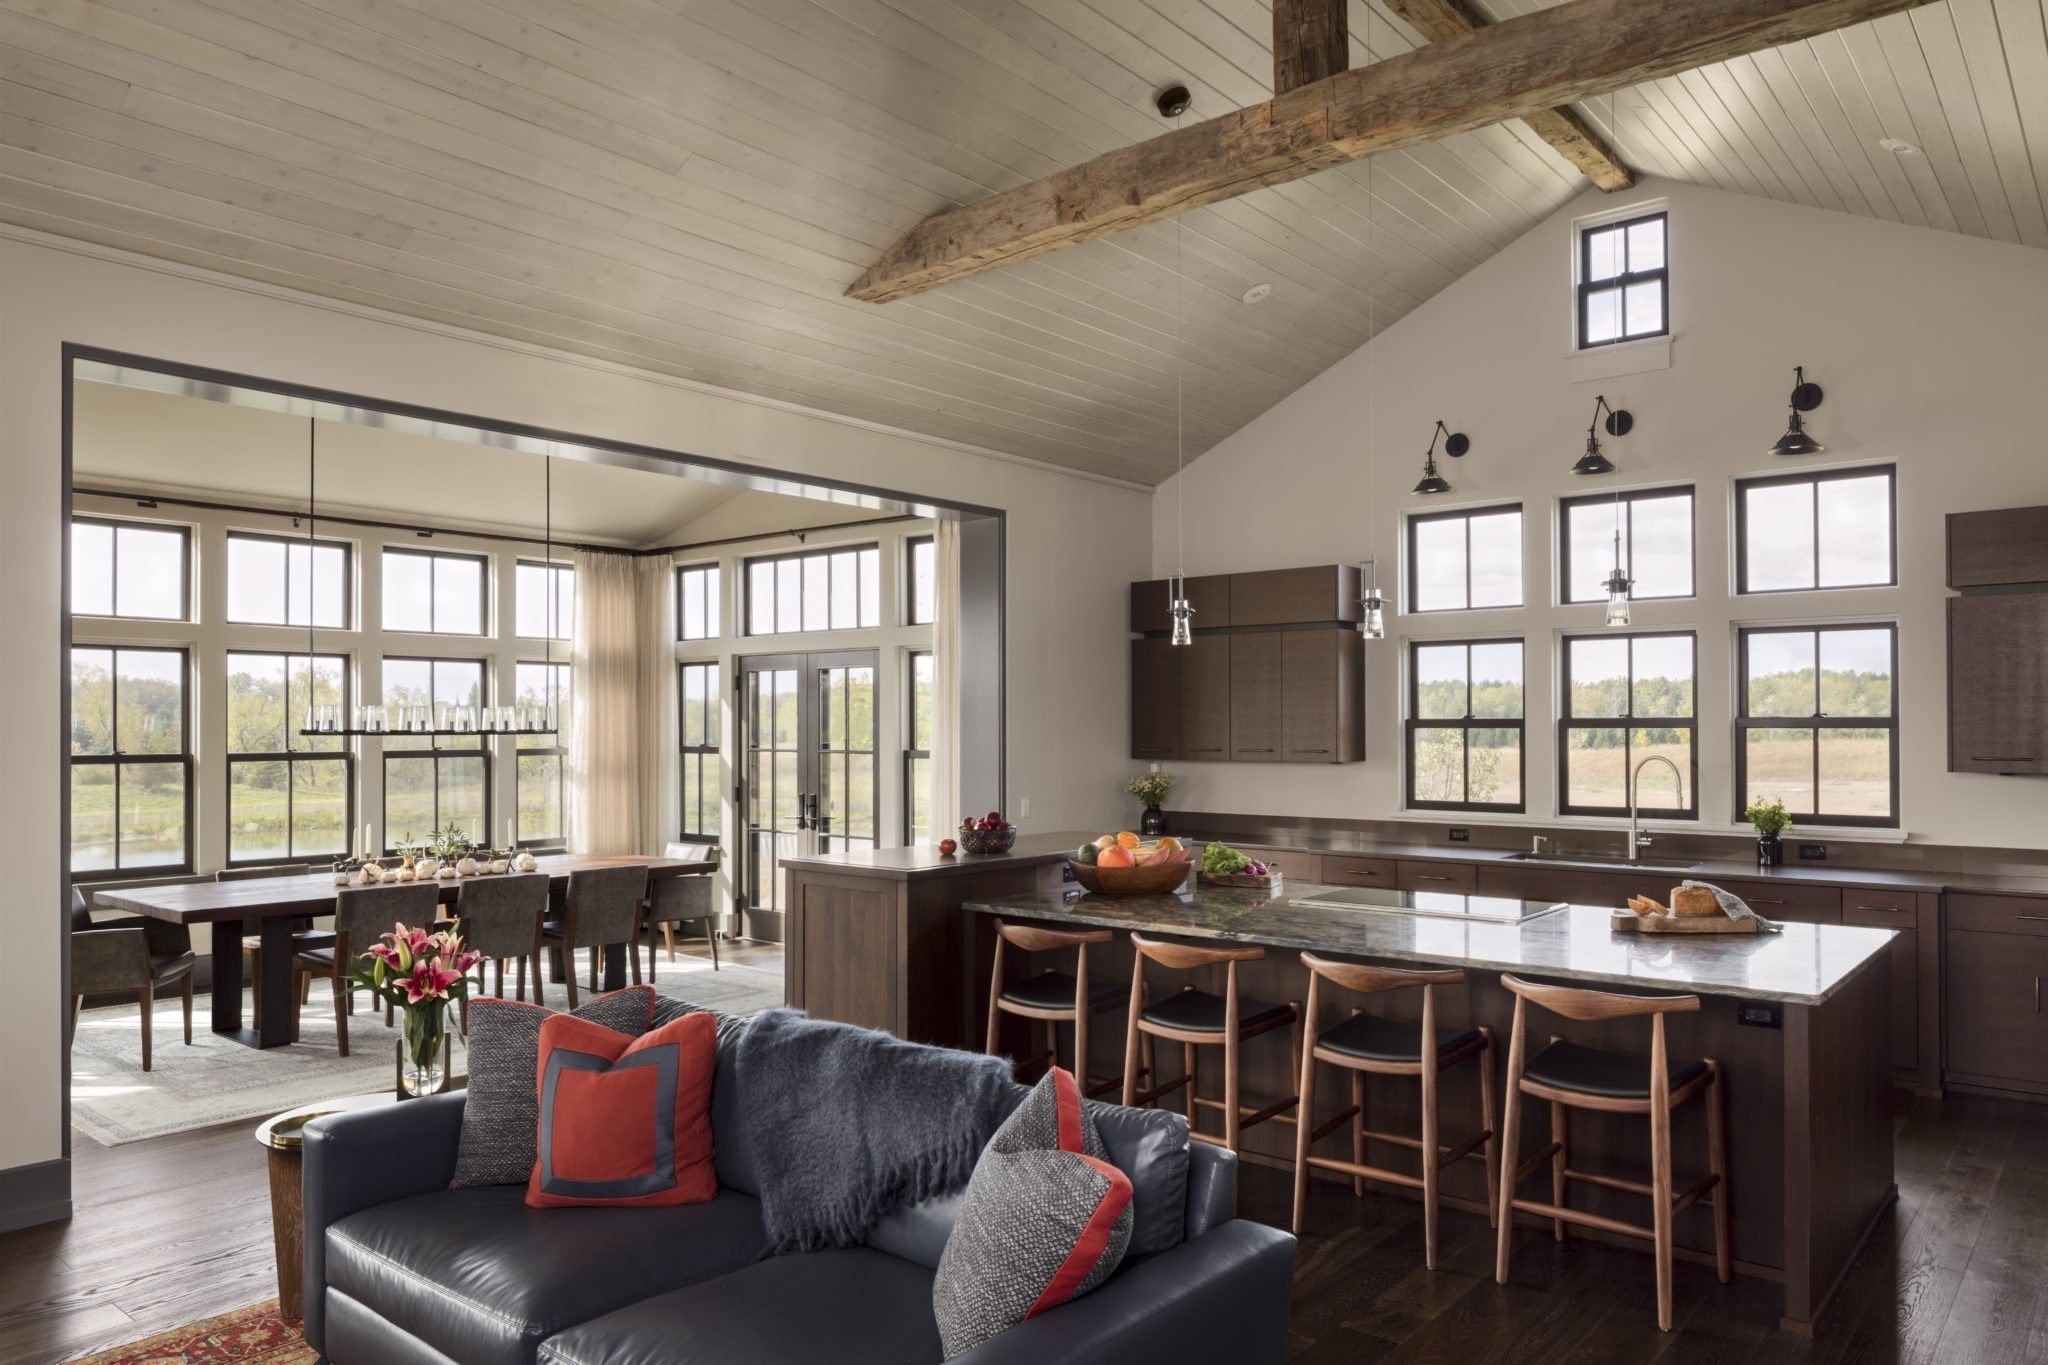 An open kitchen with soaring ceilings, rustic wood beams & natural light. by Wade Weissmann Architecture Inc.